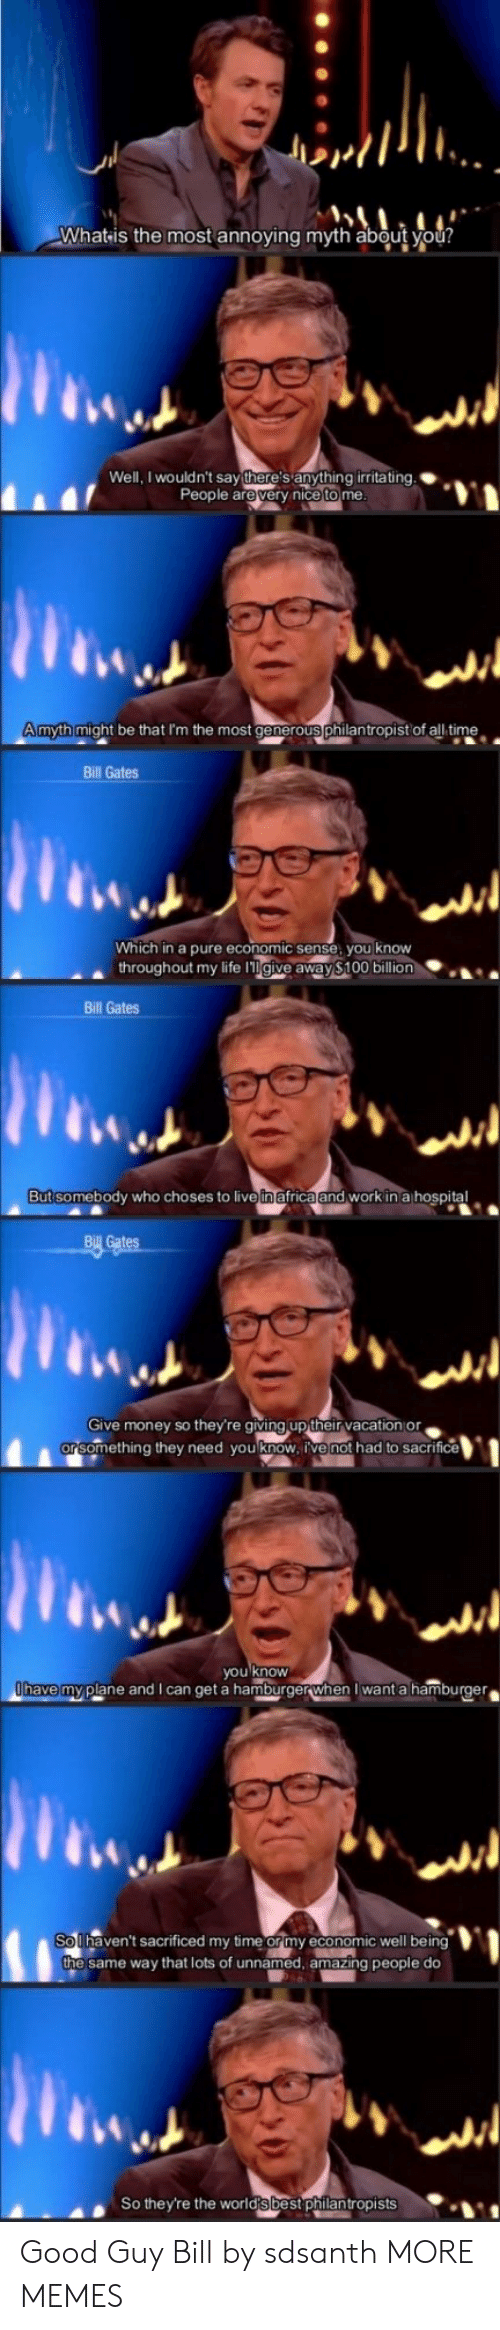 Africa, Bill Gates, and Dank: Whatis the most annoying myth about you?  Well, I wouldn't say there's anything irritating.  People are very nice to me.  Amyth might be that I'm the most generous philantropist of all time  Bill Gates  Which in a pure economic sense, you know  throughout my life lgive away $100 billion  Bill Gates  But somebody who choses to livein africa and work in a hospital  Bill Gates  Give money so they're giving up their vacation or  orsomething they need you know, ive not had to sacrifice  you know  Ohave myplane and I can get a hamburgerwhen I want a hamburger  So Ihaven't sacrificed my time or my economic well being  the same way that lots of unnamed, amazing people do  So they're the world's best philantropists Good Guy Bill by sdsanth MORE MEMES